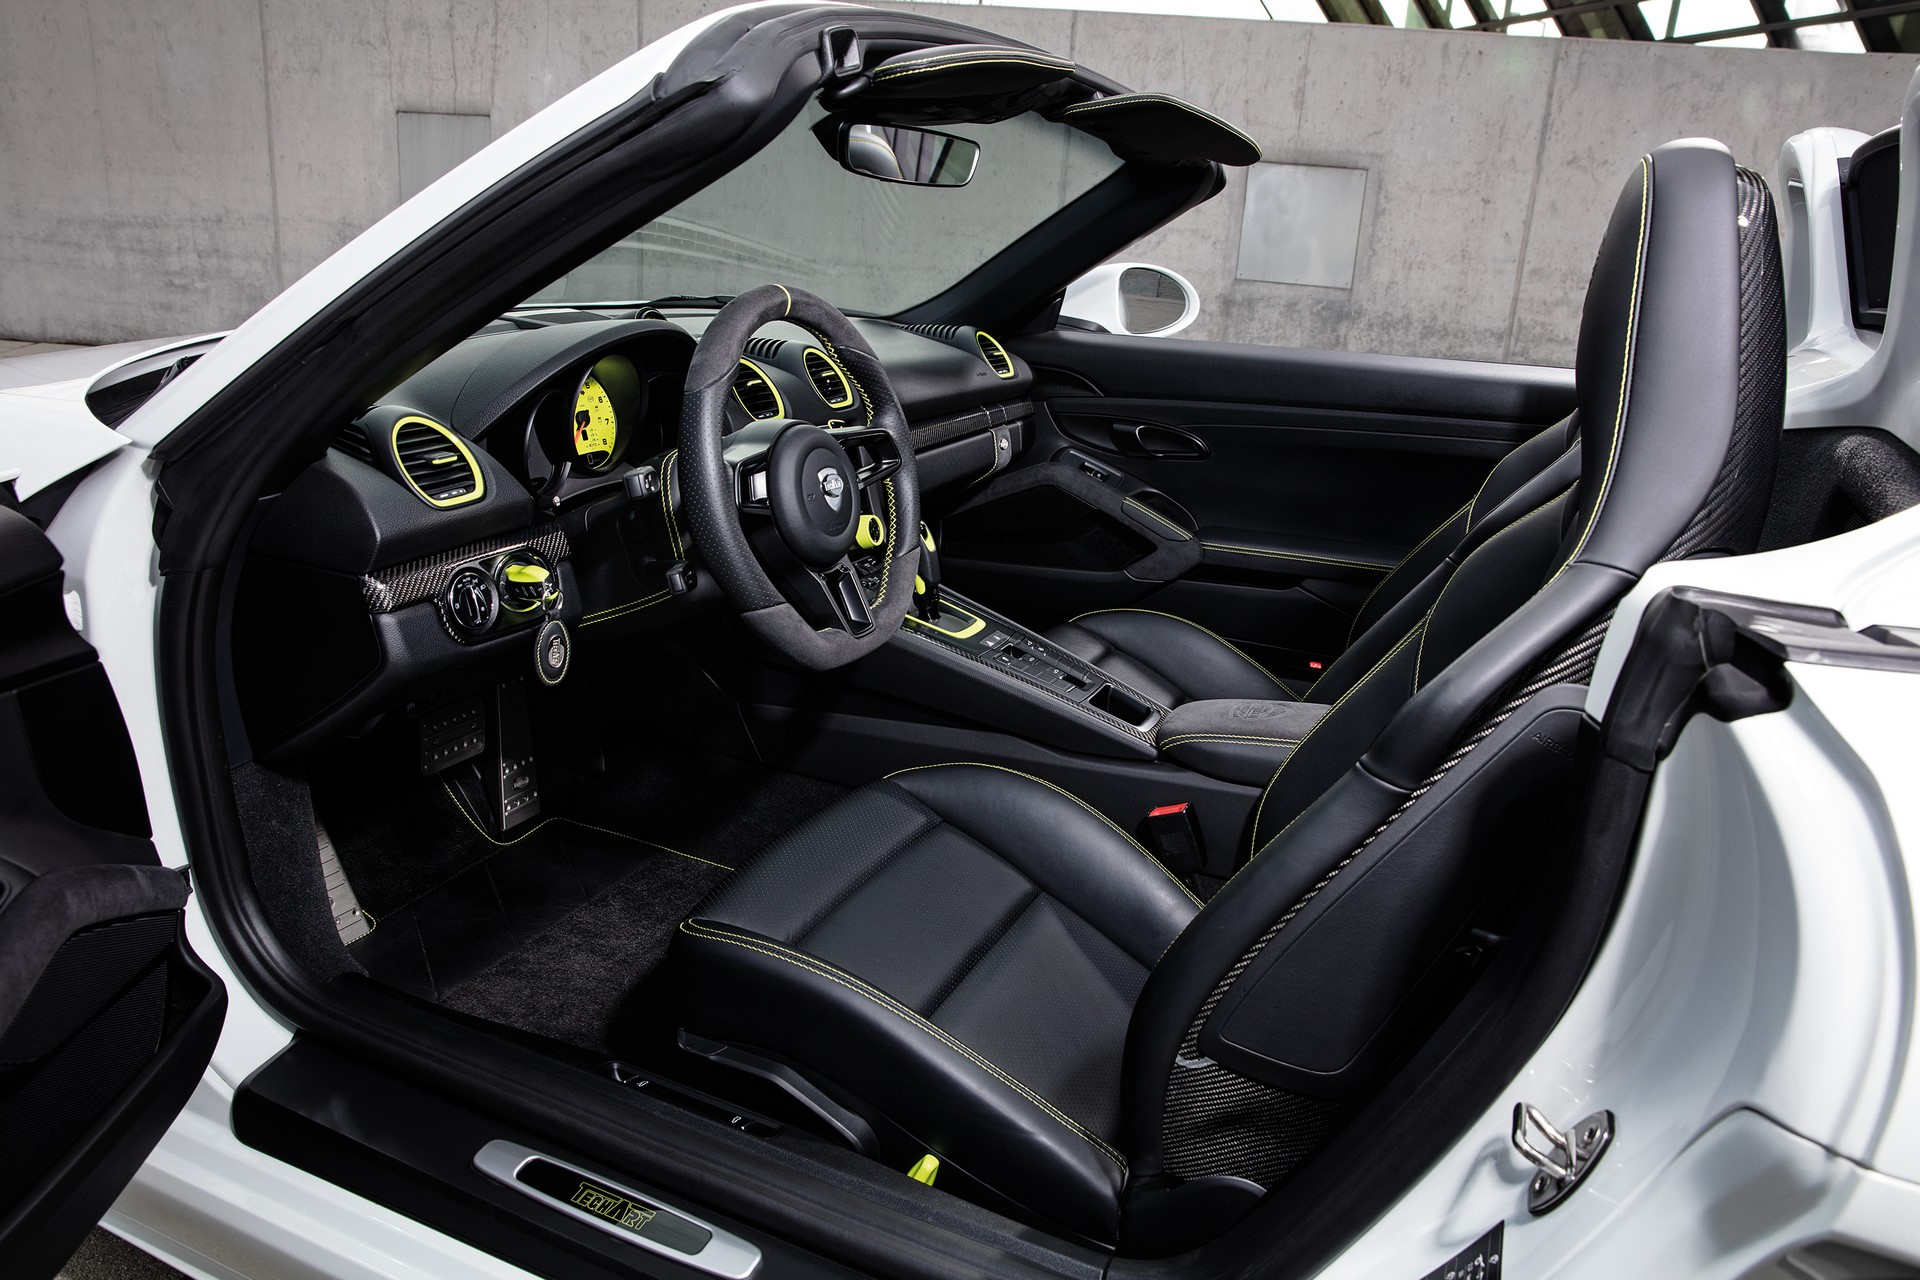 TECHART_Detail_Interior_08